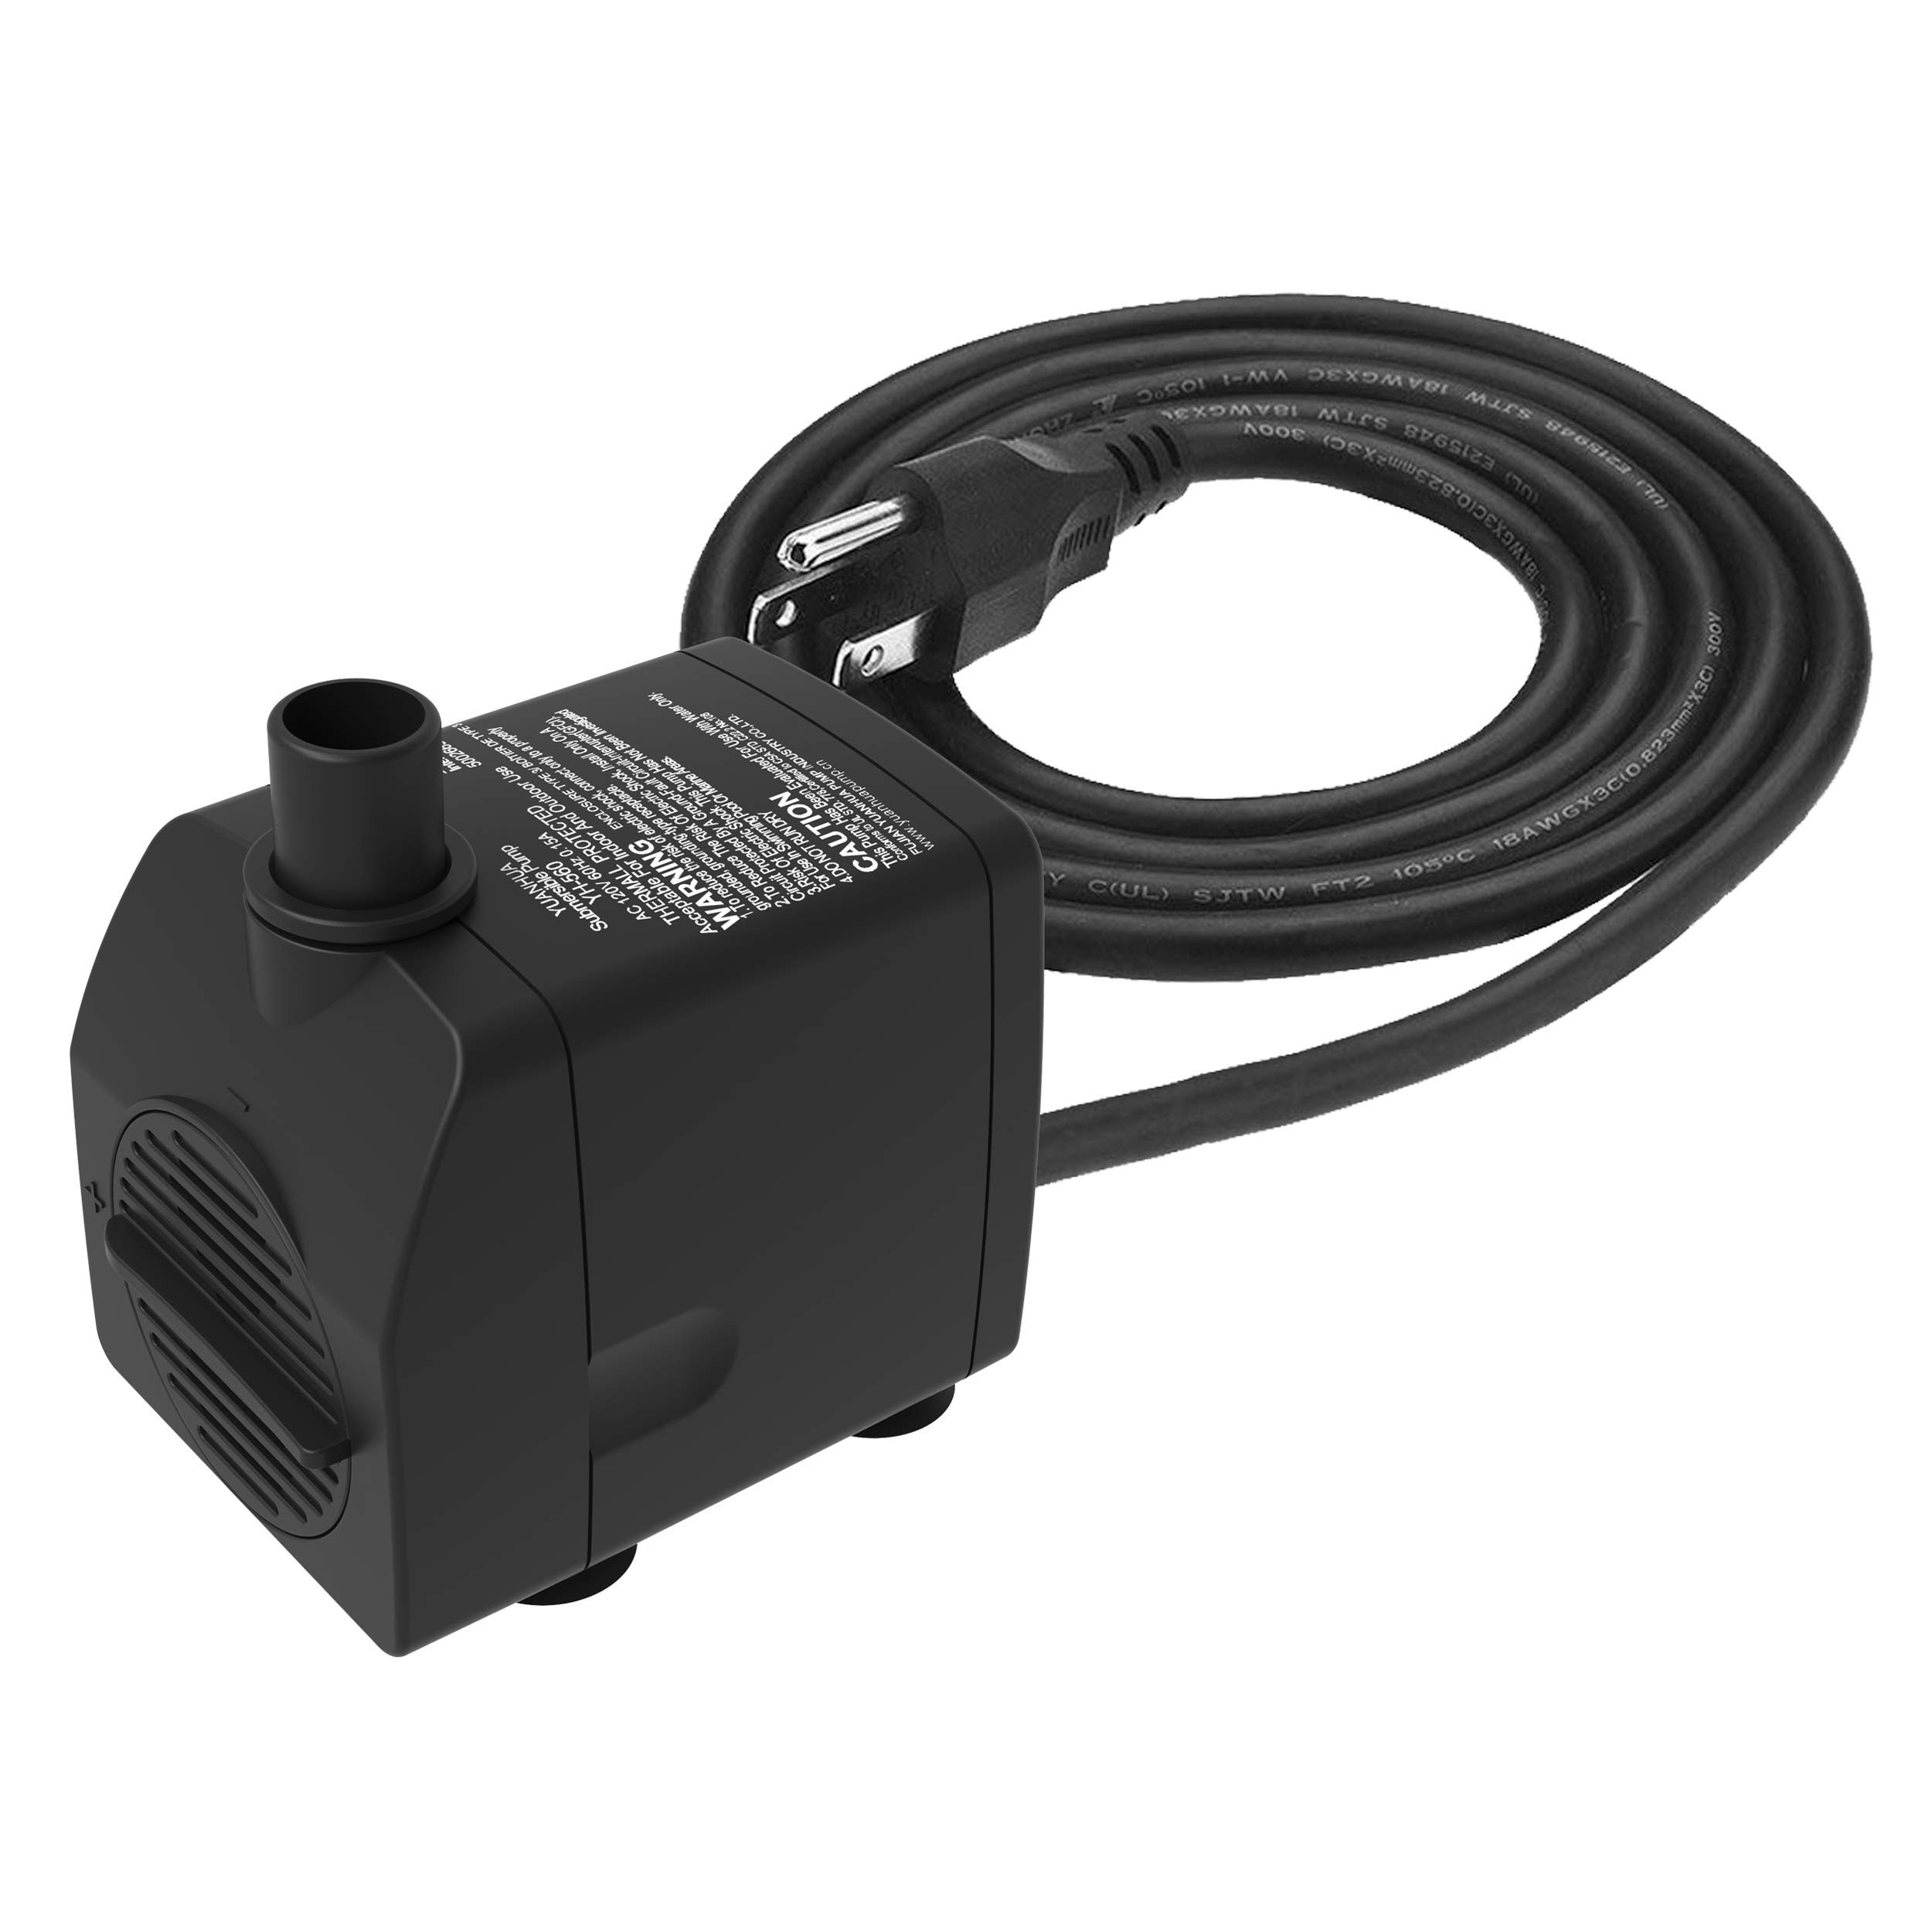 Submersible Water Pump Ultra Quiet with Dry Burning Protection160GPH for Fountains, Hydroponics, Ponds, Aquariums & More